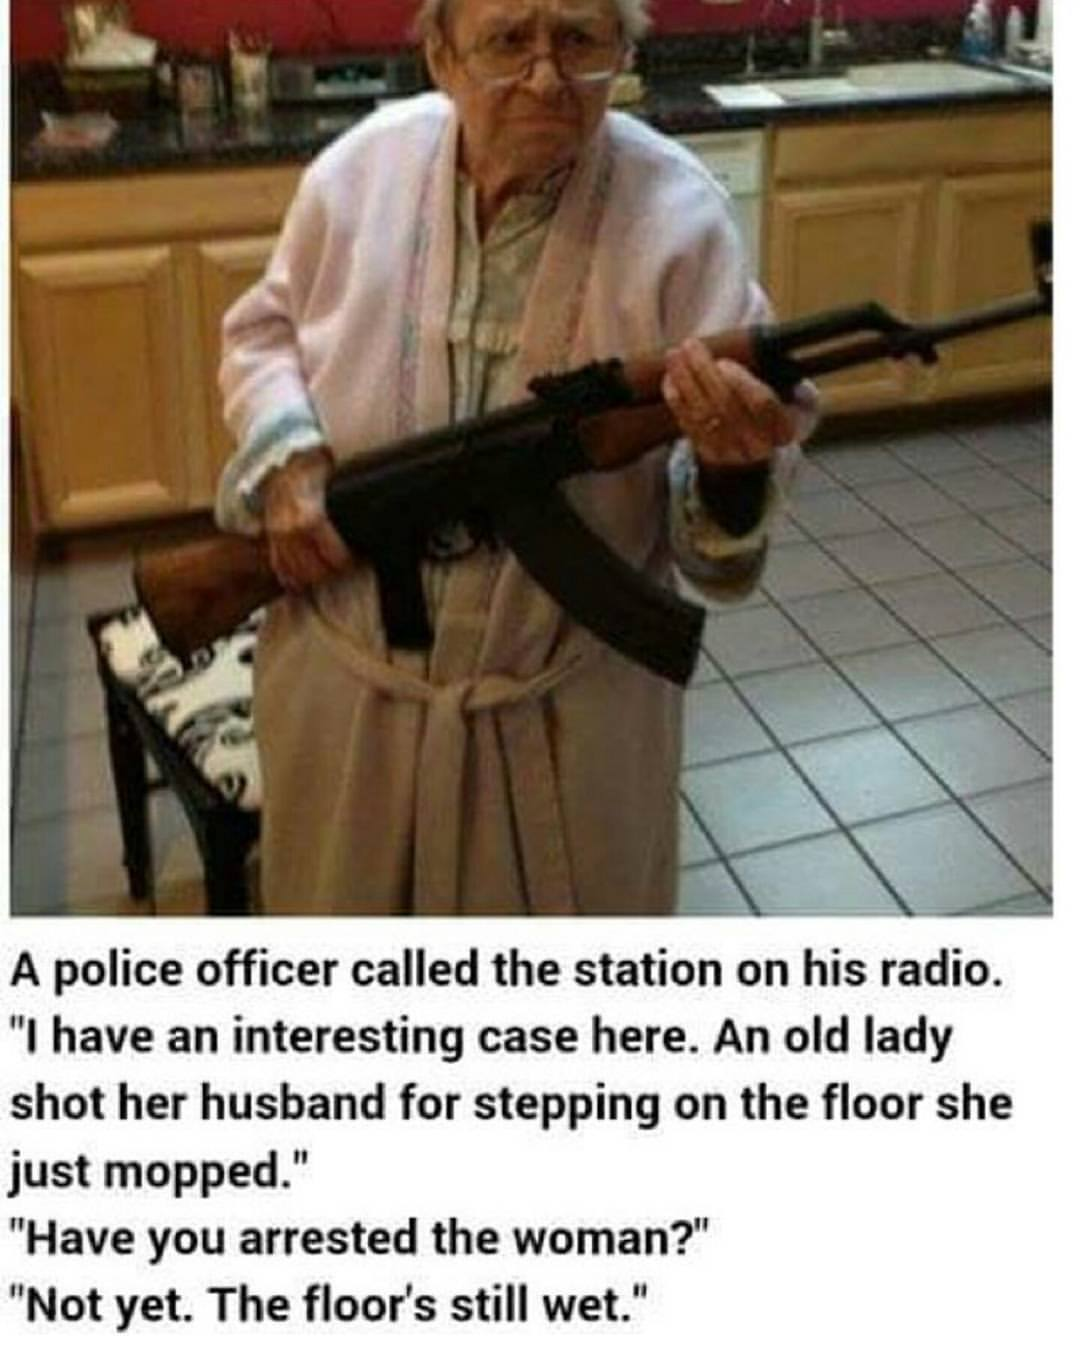 an-old-lady-shot-her-husband-for-stepping-on-the-floor-she-just-mopped